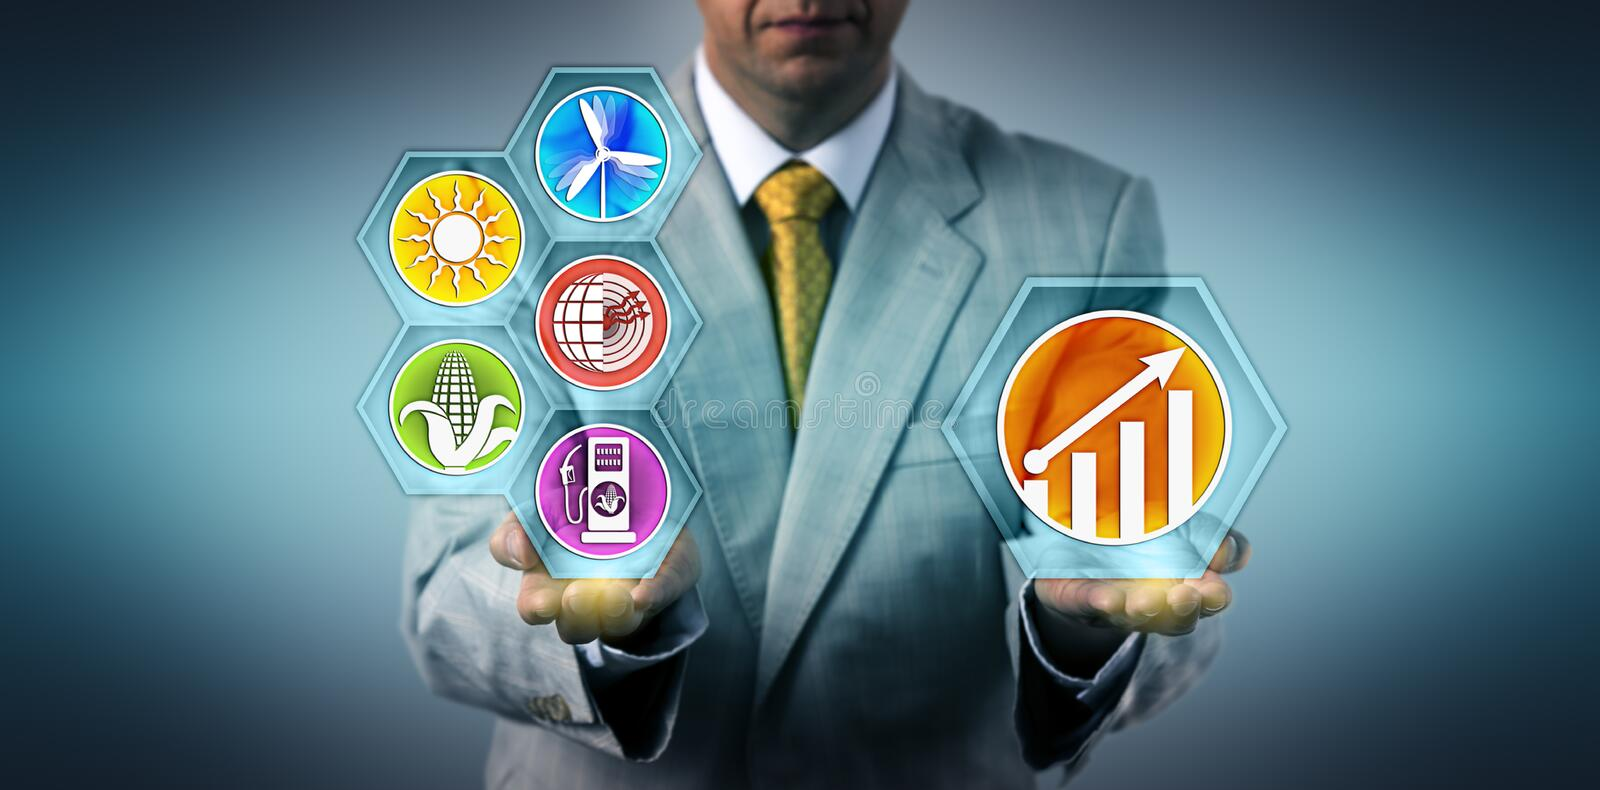 Manager Projecting Growth For Renewable Resources royalty free stock image